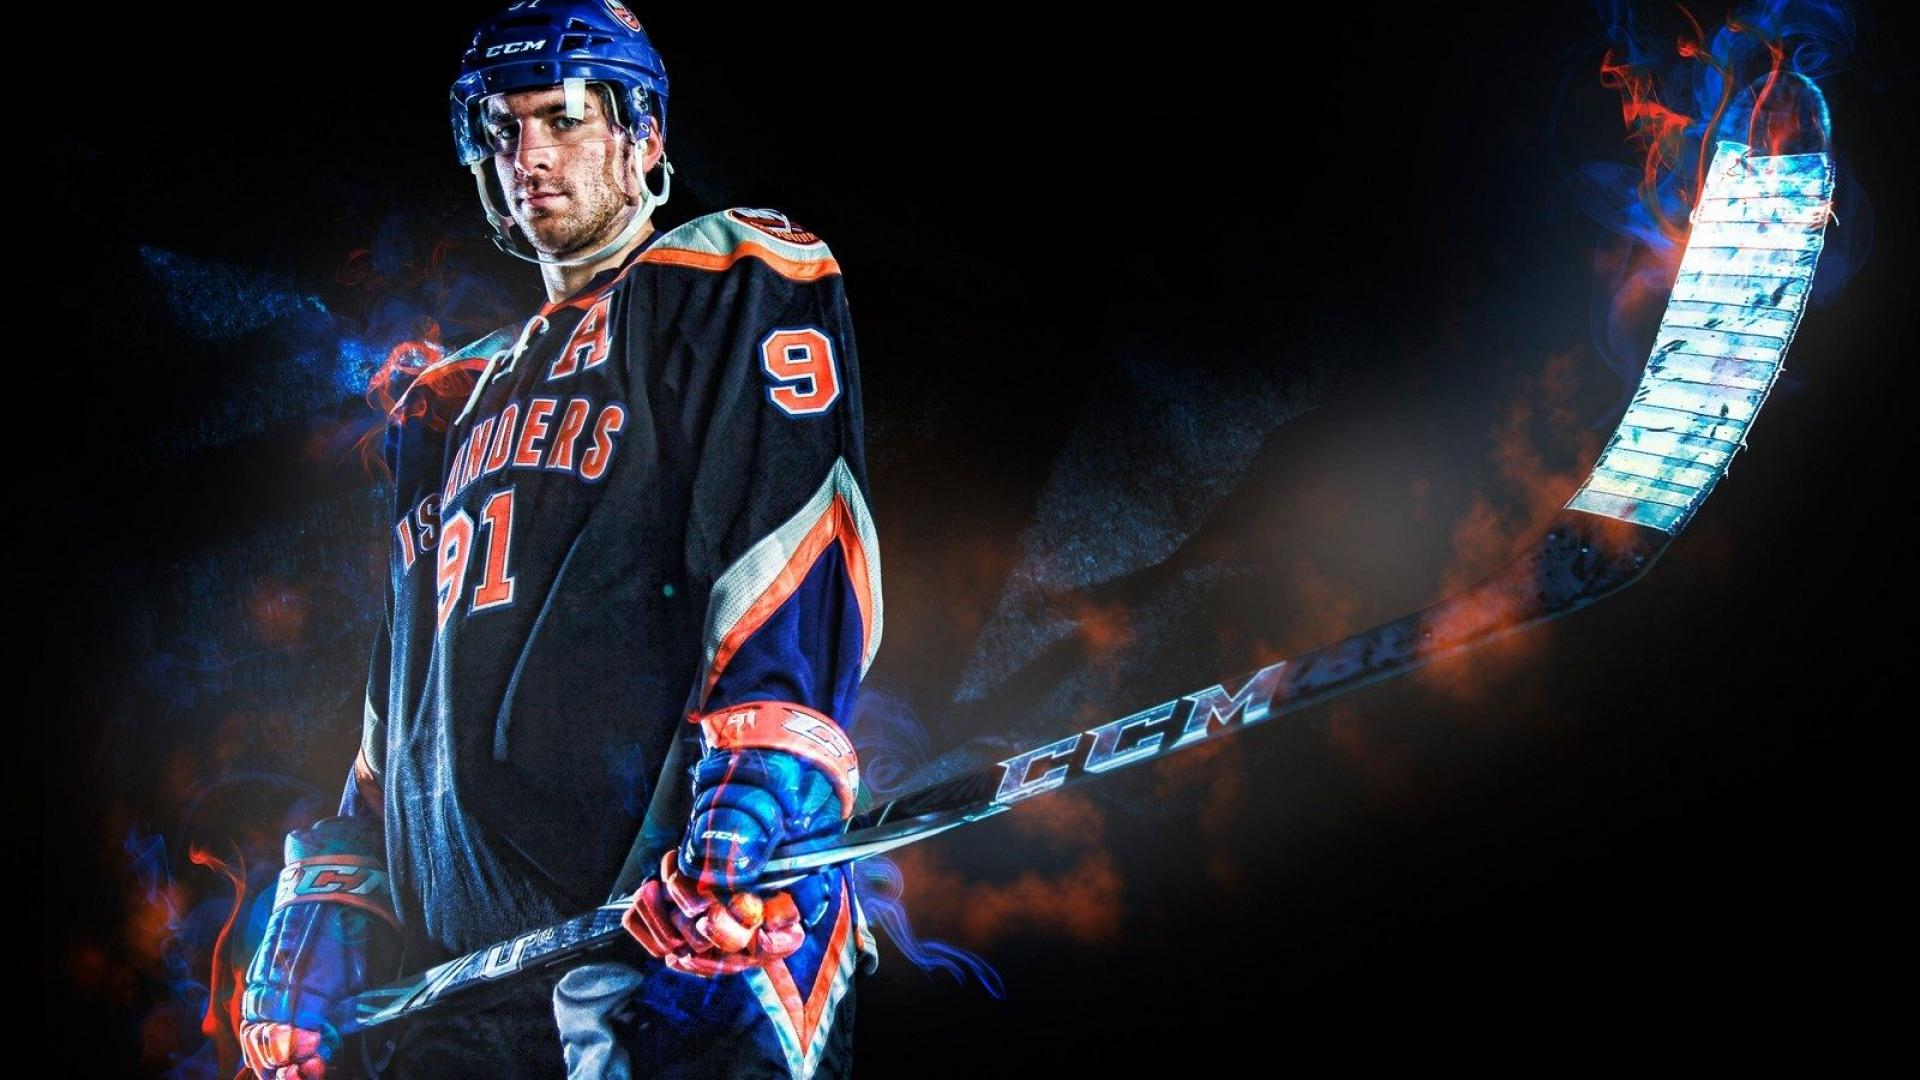 New York Islanders NHL 1080x1920 Wallpaper HDTV Desktop Wallpaper 1920x1080